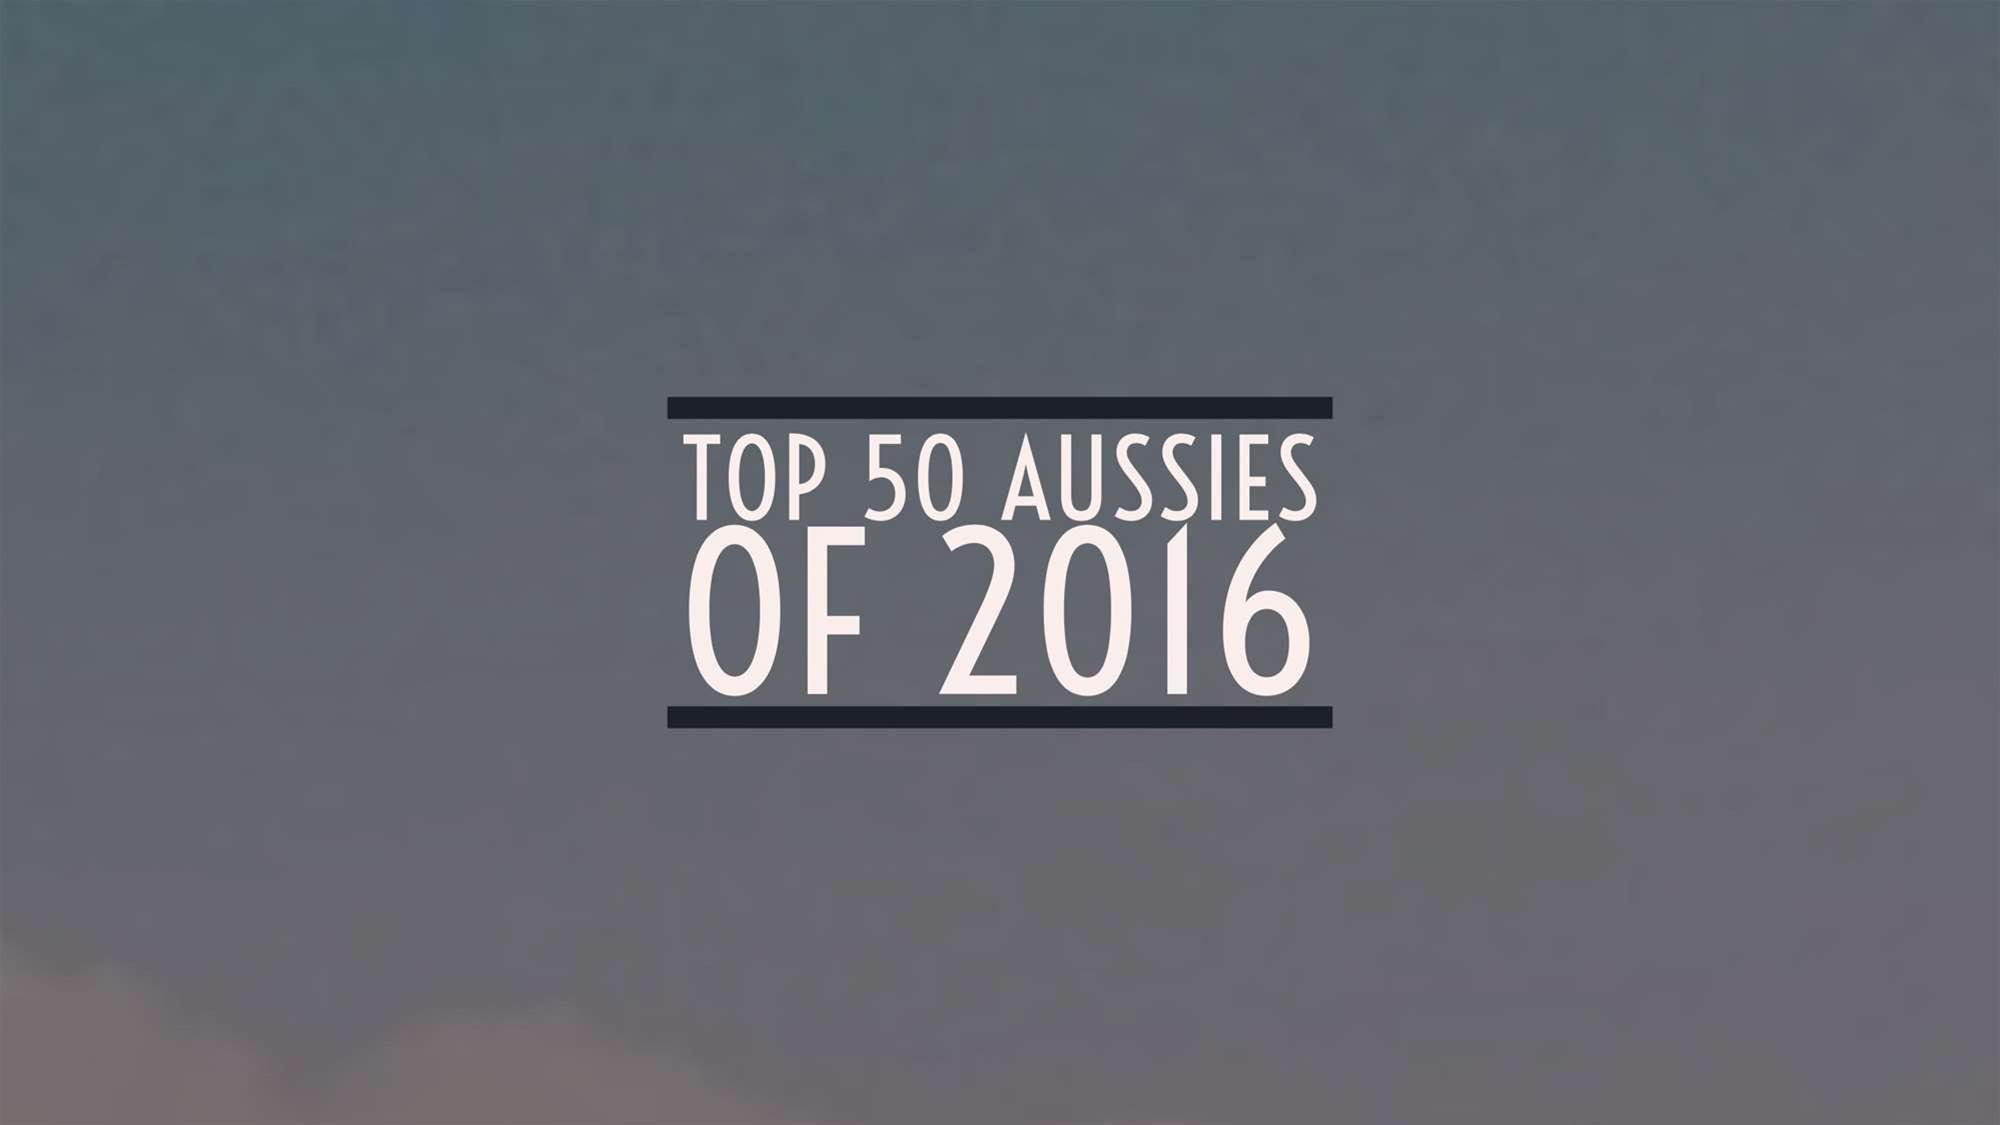 The top 50 Aussies of 2016 - the full countdown